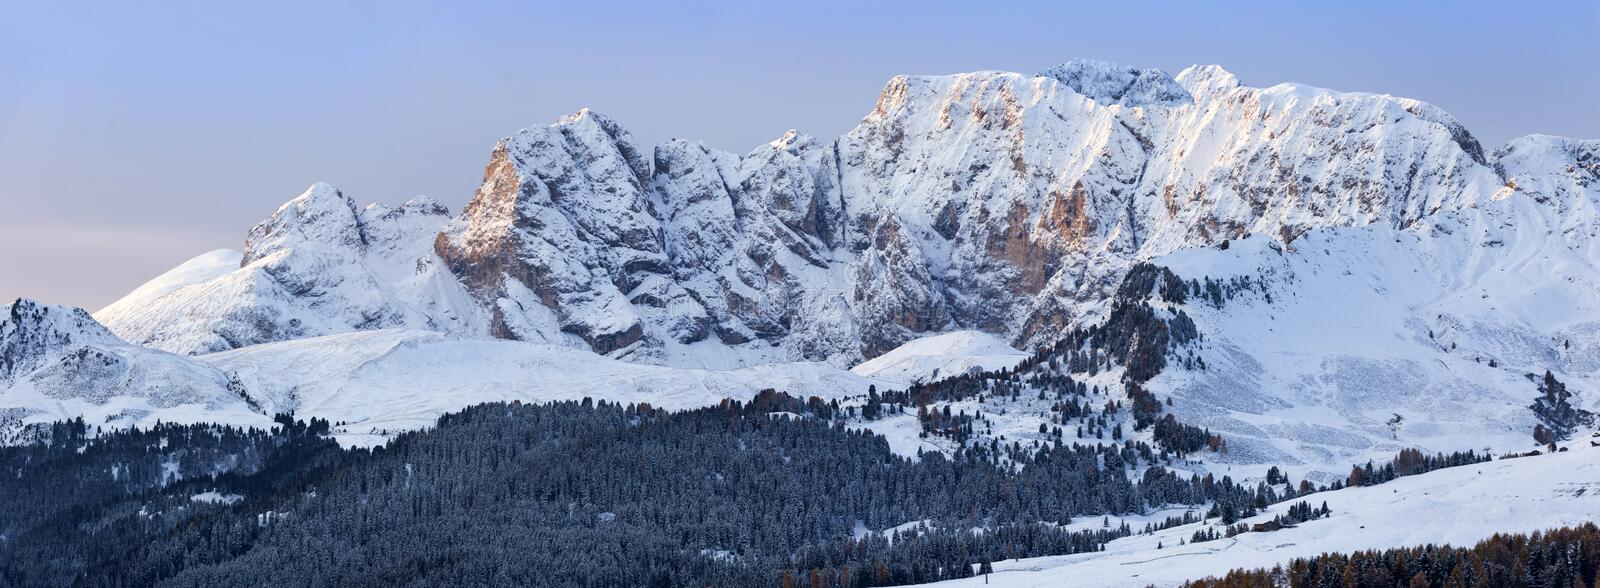 Beautiful Winter at Alpe di Siusi, Seiser Alm - Italy - Holiday background for Christmas. Alpine, alps, beauty, blizzard, blue, card, celebration, cold royalty free stock images